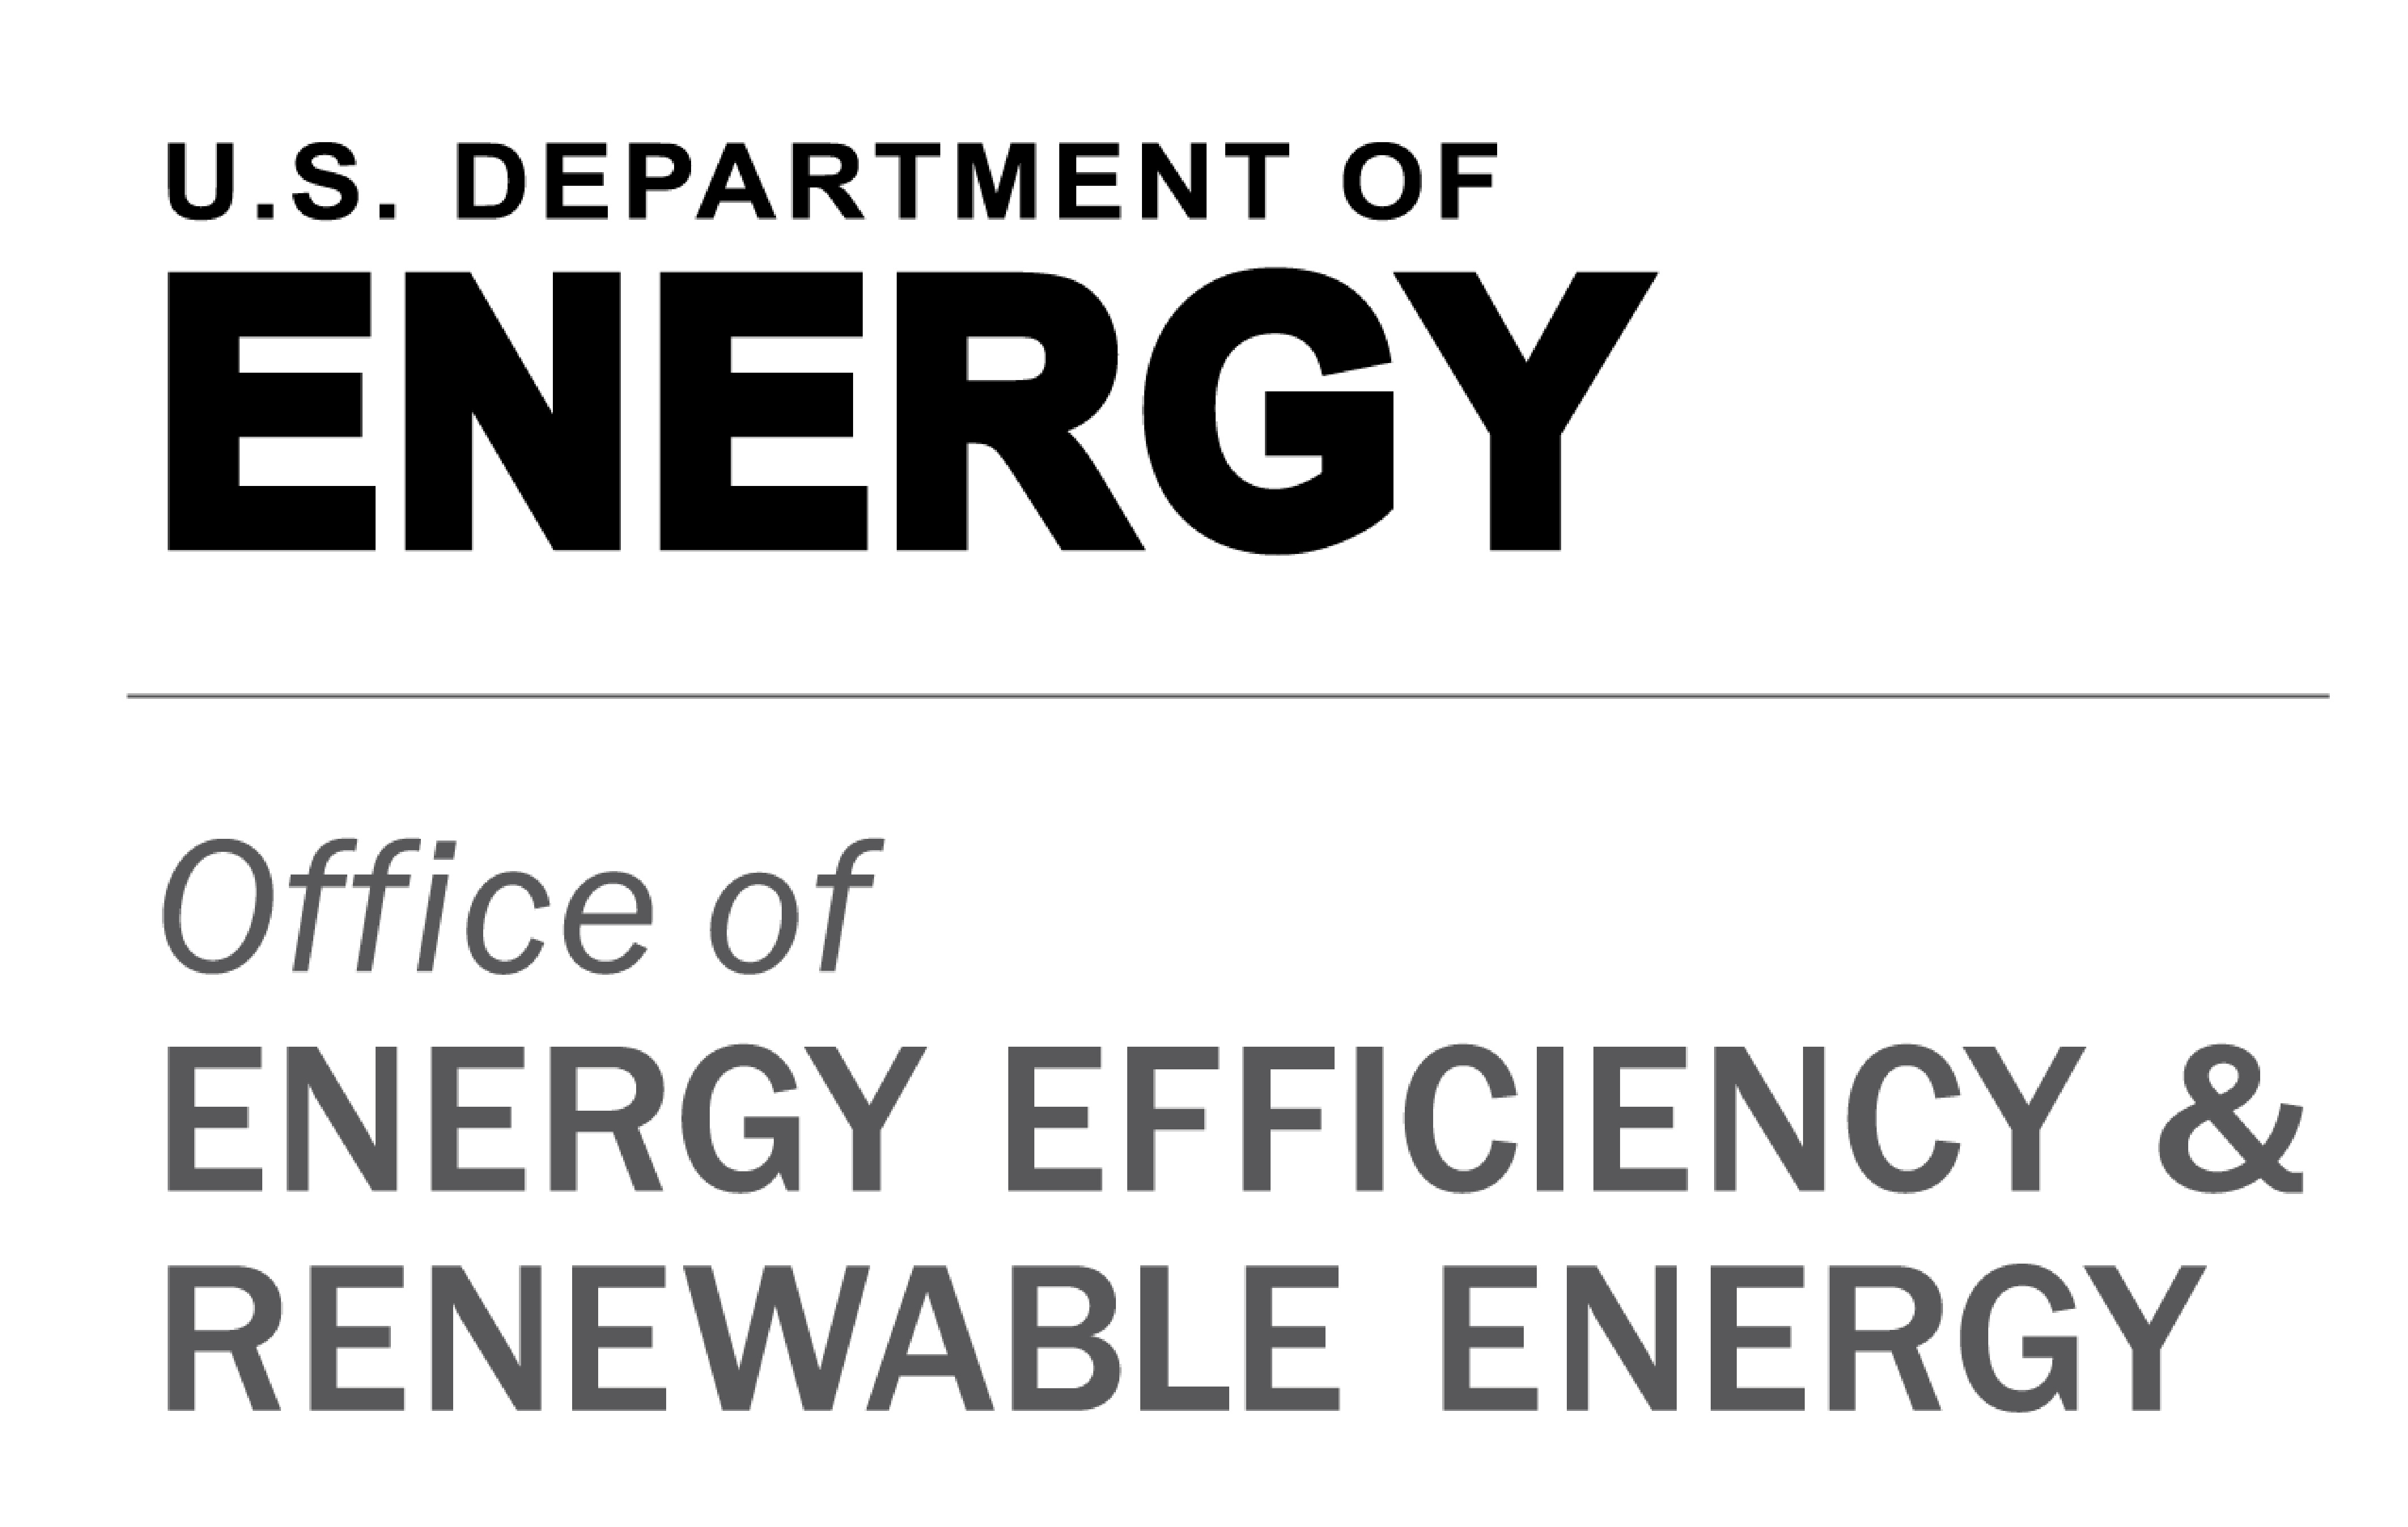 US Department of Energy - Office of Energy Efficiency and Renewable Energy logo